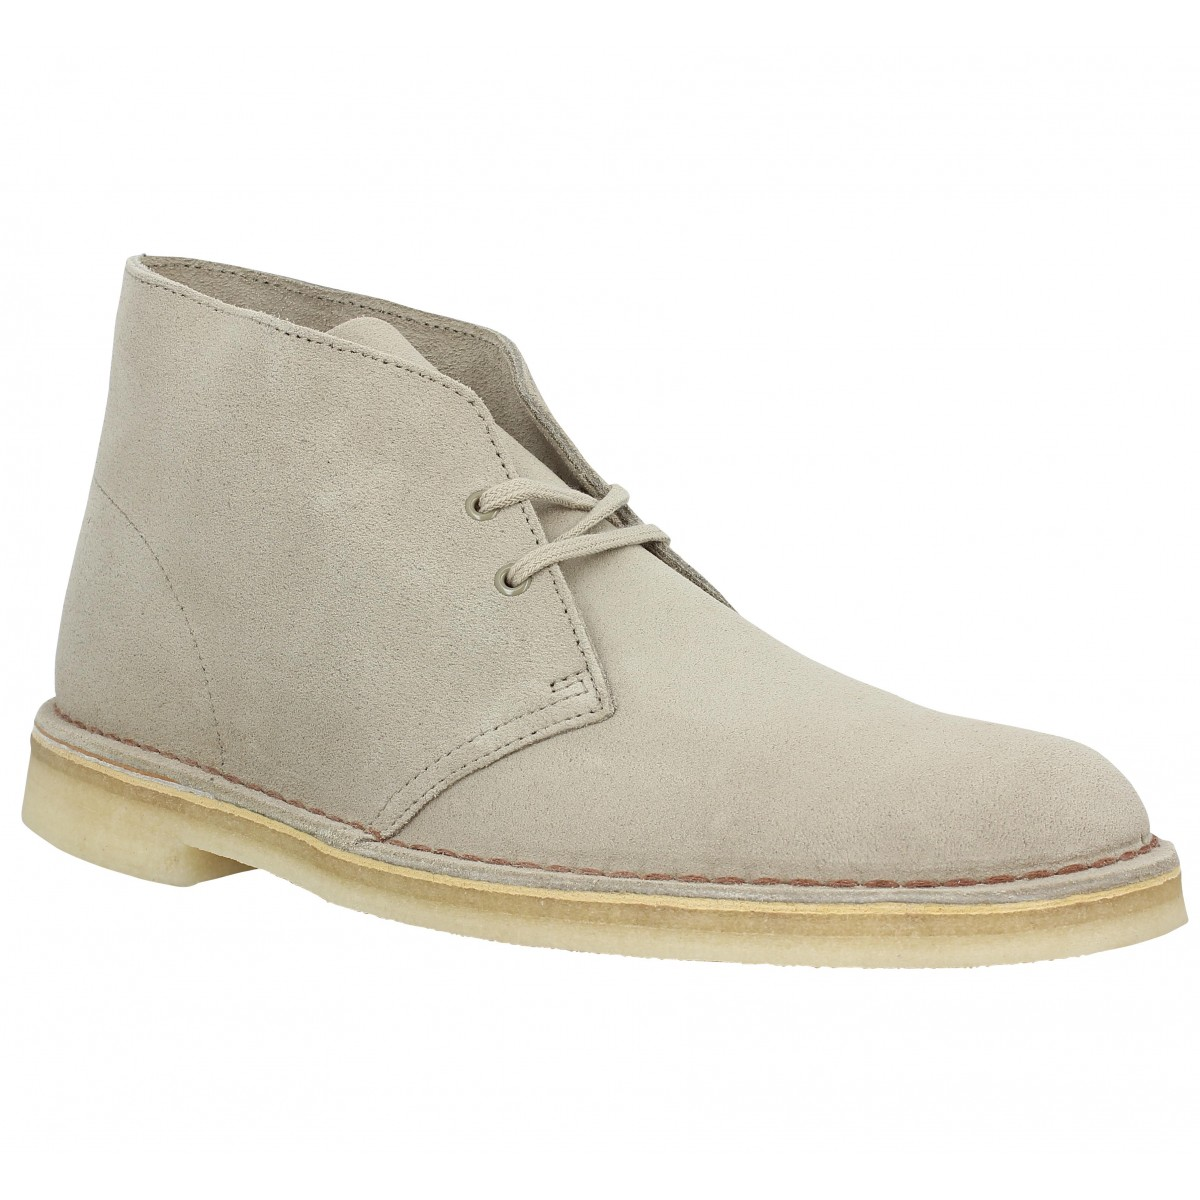 2e7d4c956add78 Clarks originals desert boot velours homme sand homme | Fanny chaussures